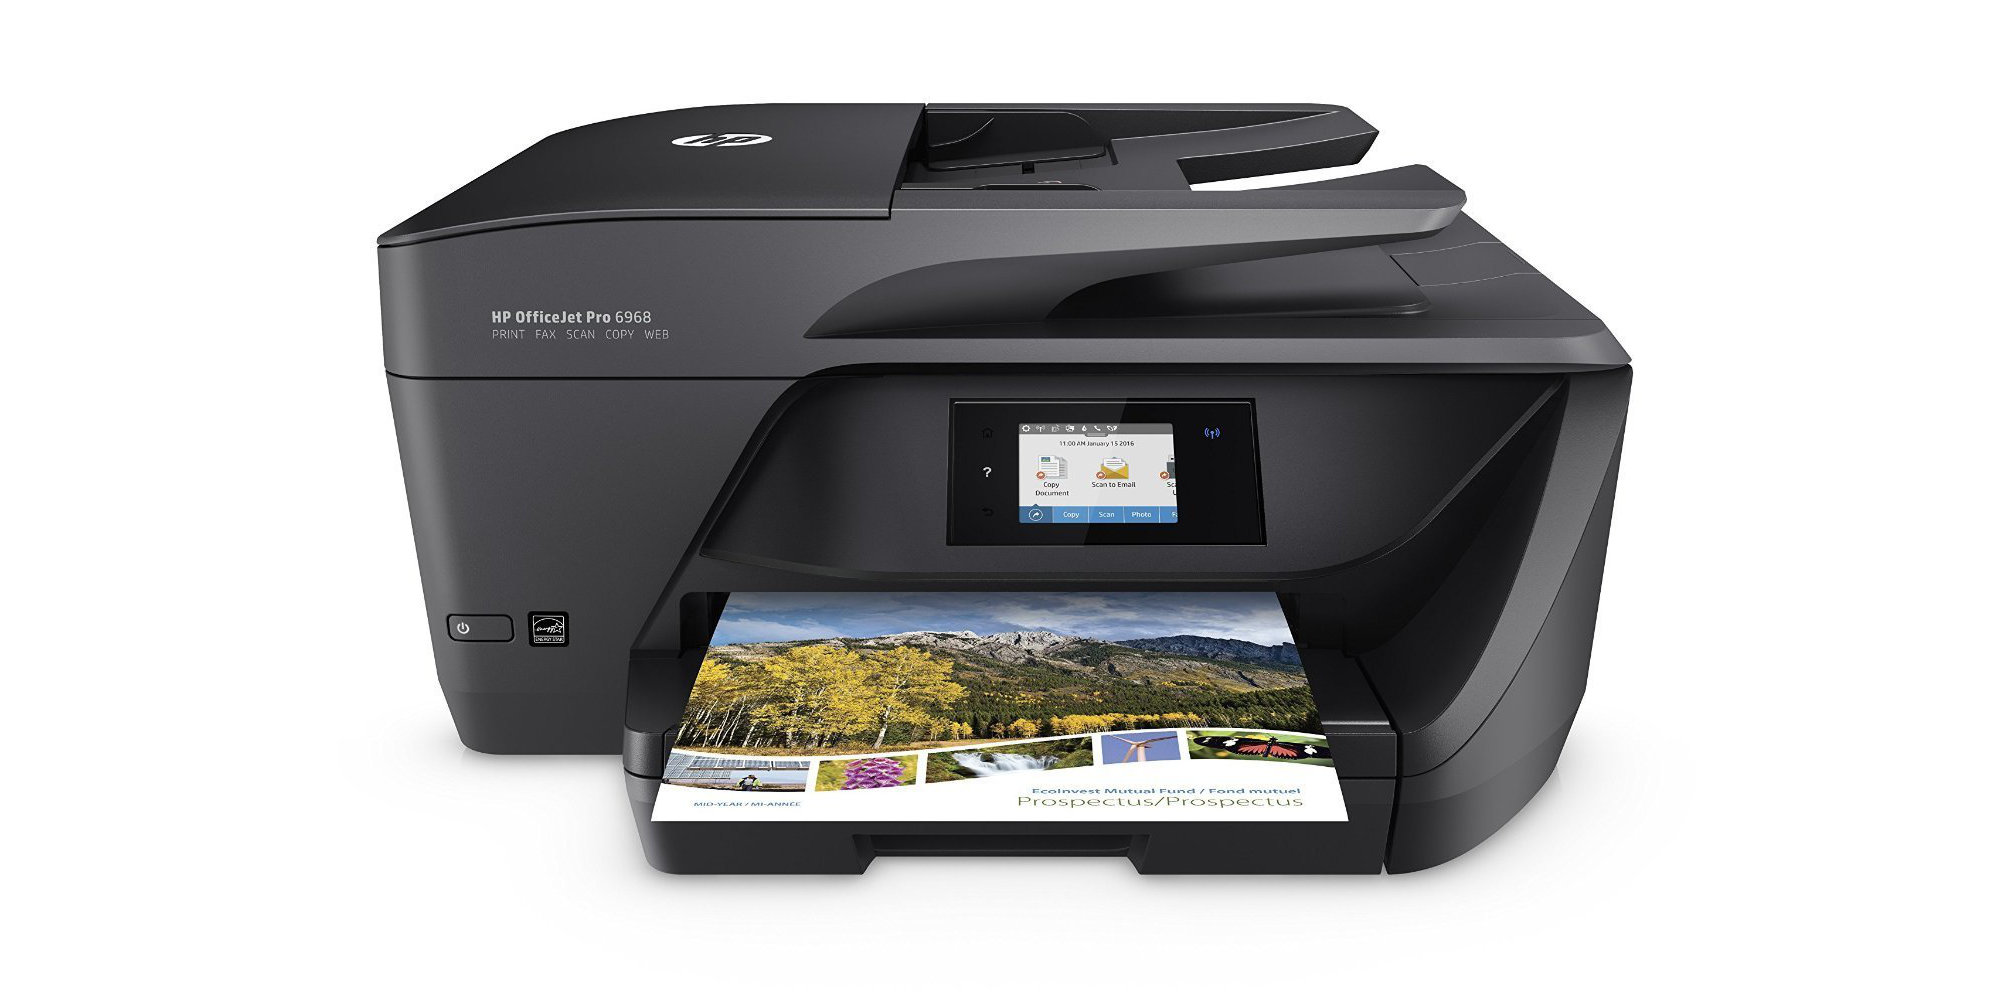 Save 50% on HP's OfficeJet Pro AiO Printer w/ AirPrint, now down to $75 shipped